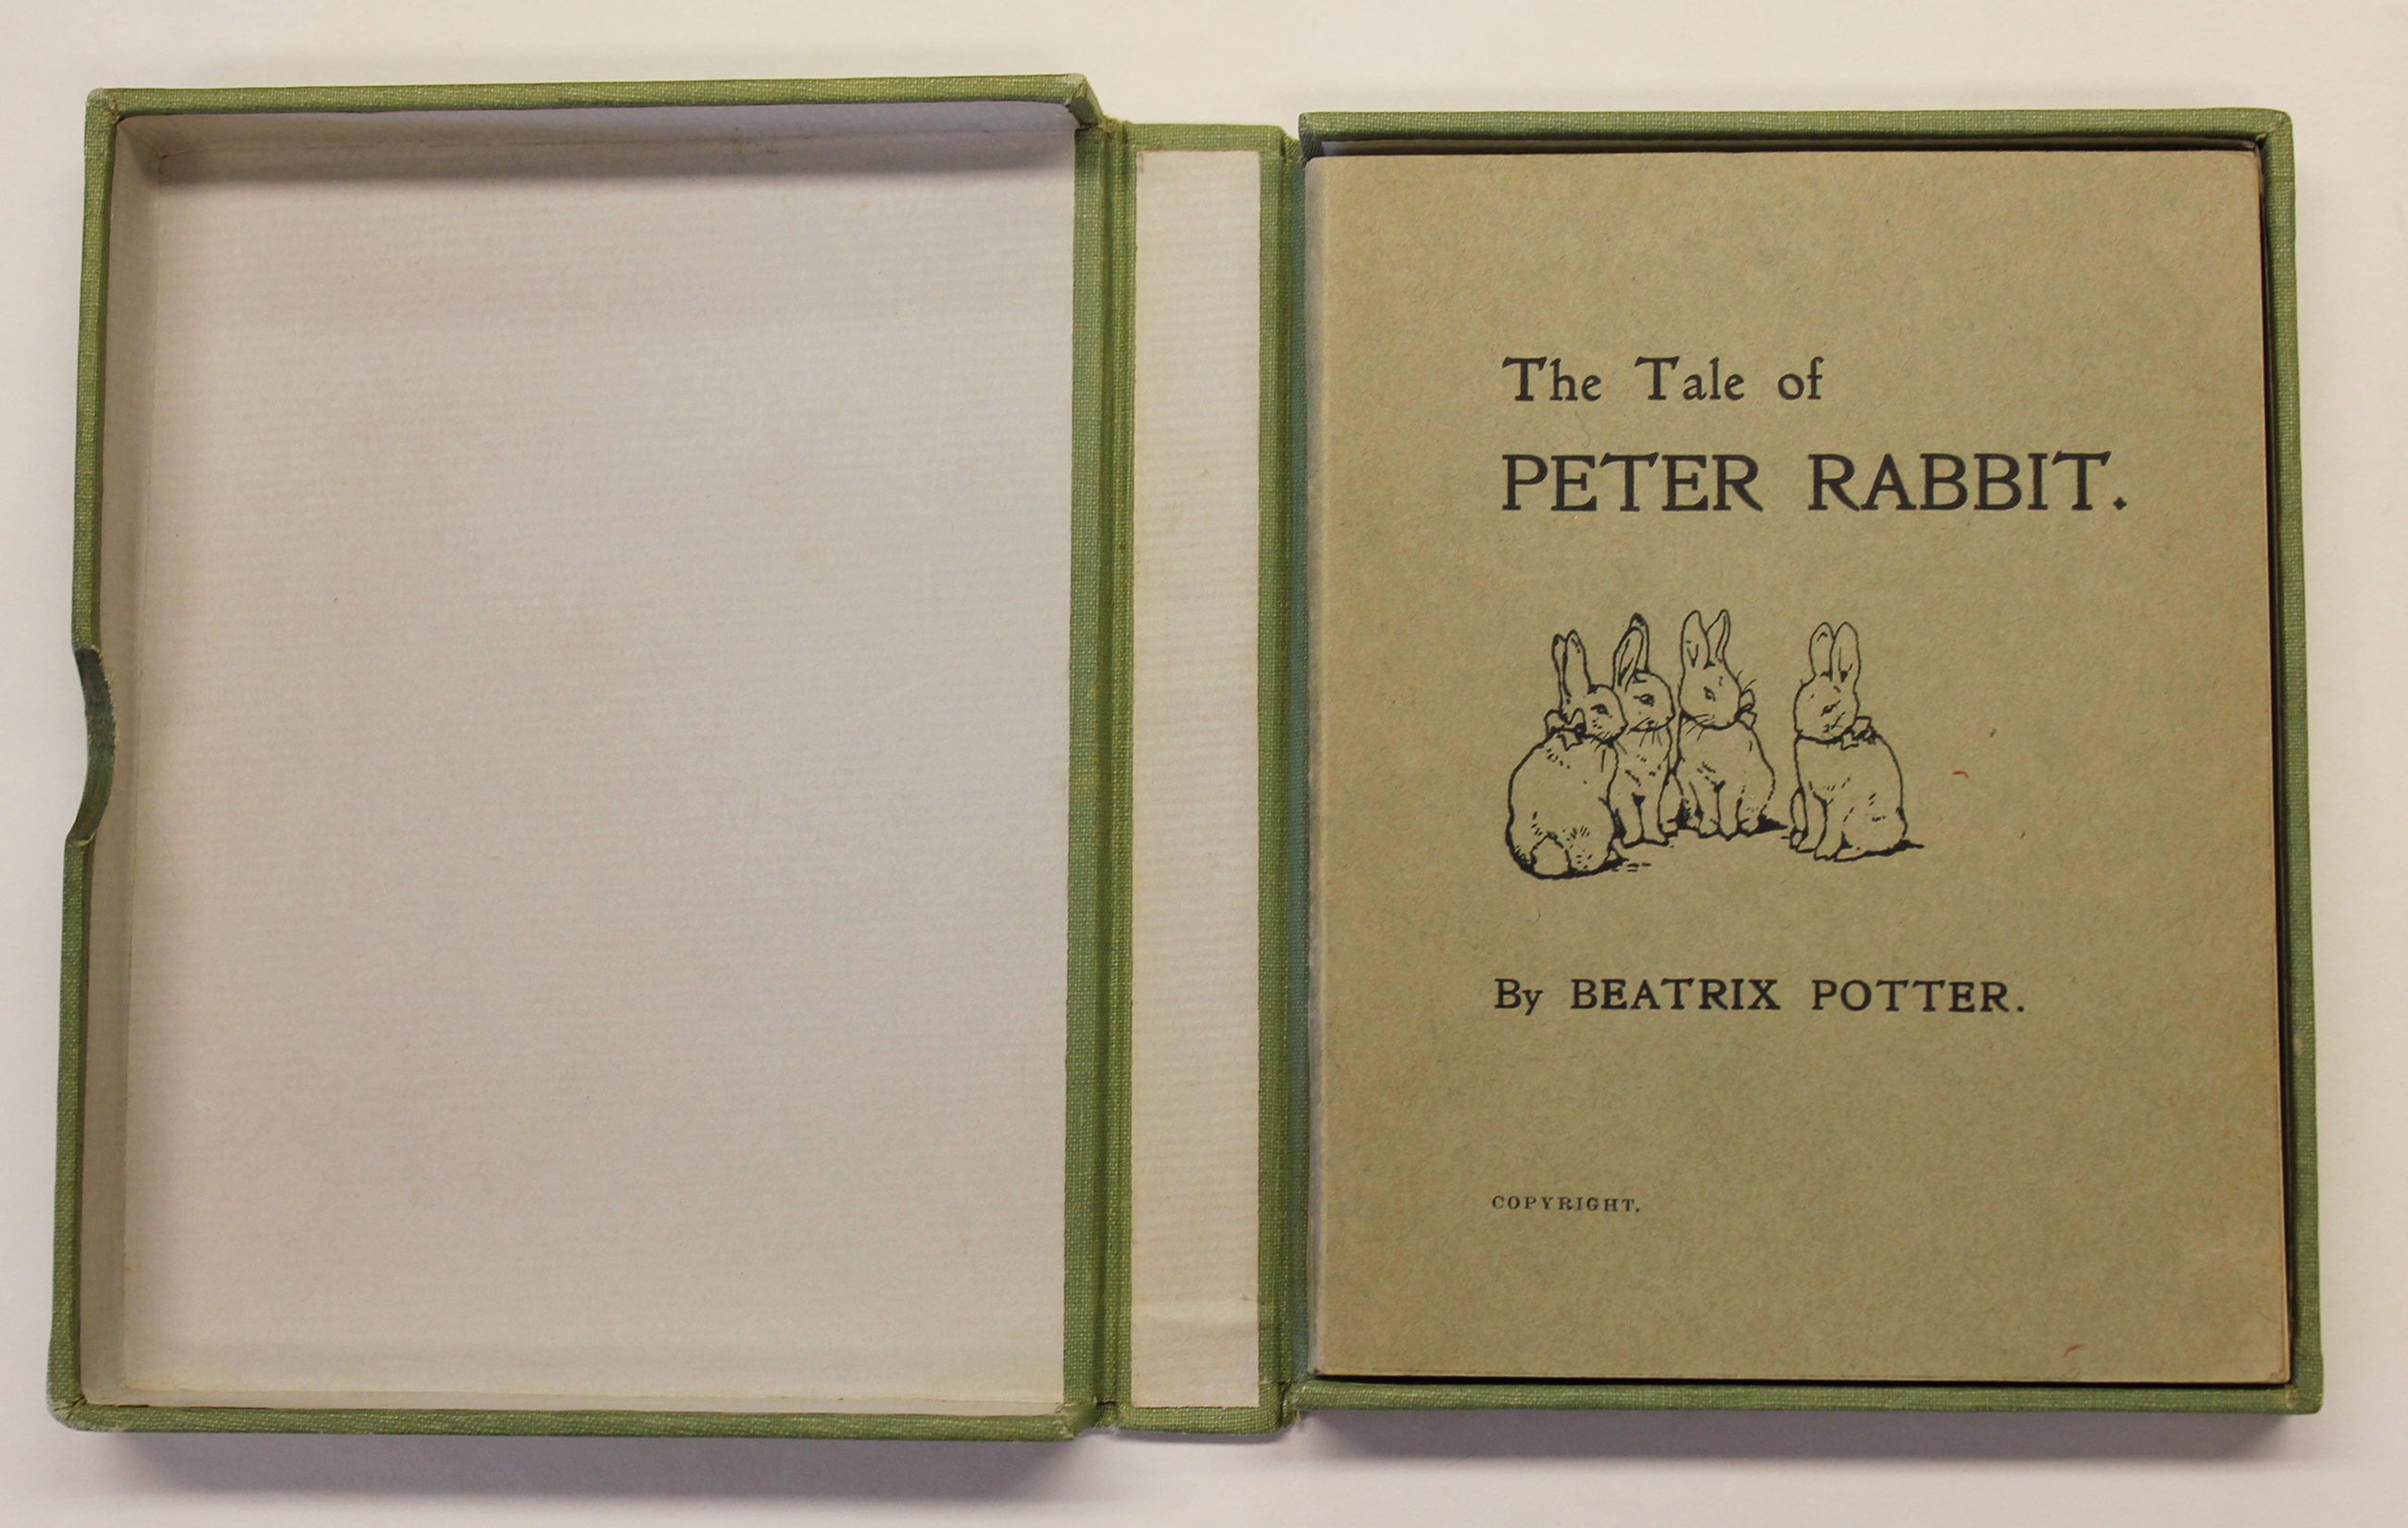 The tale of peter rabbit simple english wikipedia, the free.